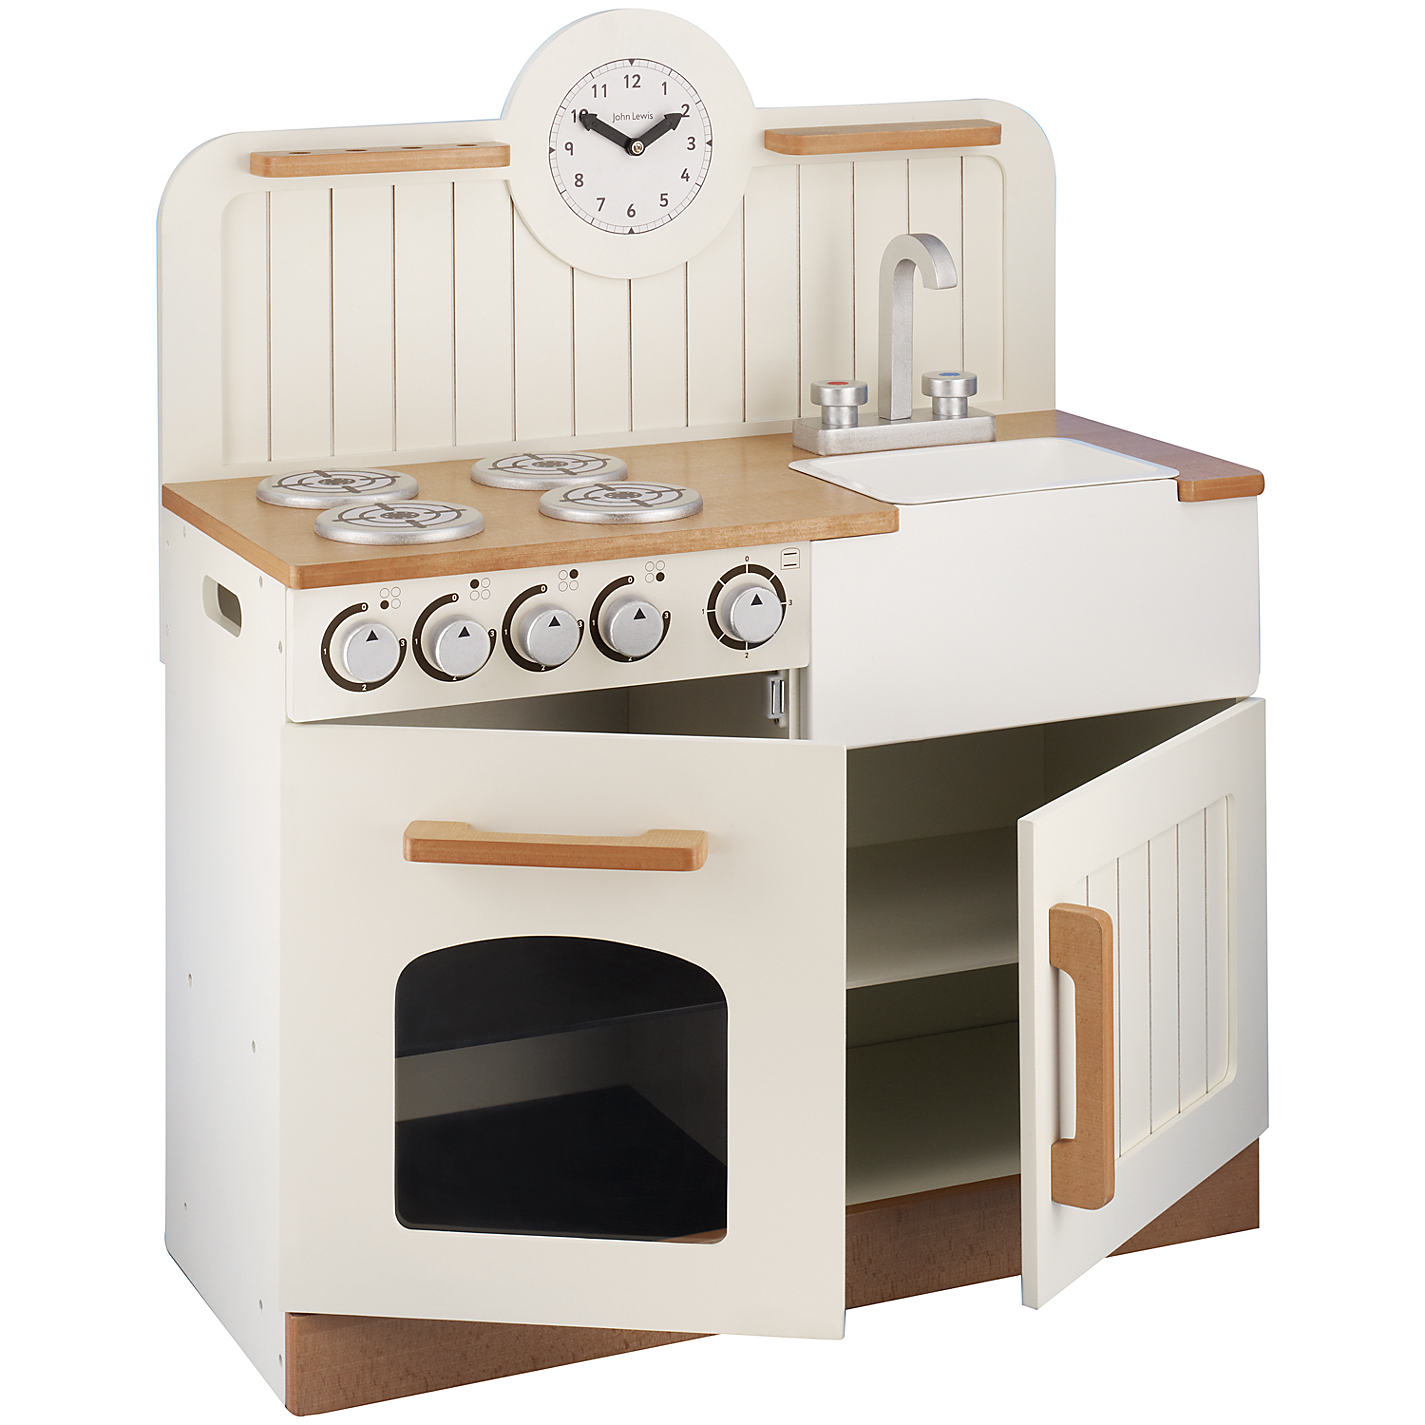 Buy John Lewis Country Play Wooden Kitchen